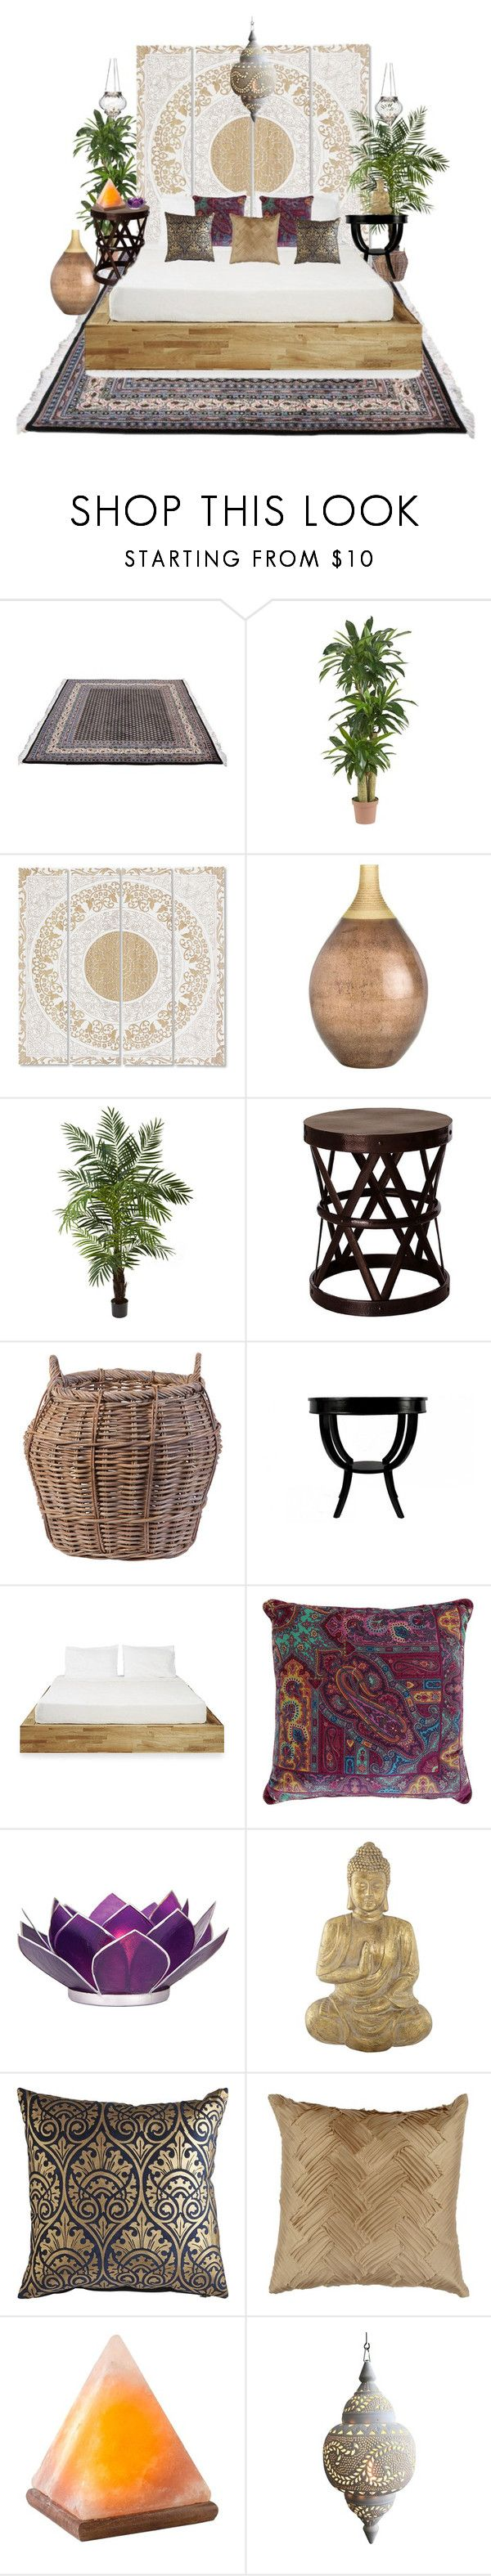 """Bohemian Bedroom"" by migalowa on Polyvore featuring interior, interiors, interior design, home, home decor, interior decorating, Nearly Natural, Arteriors, Flamant and Jayson Home"